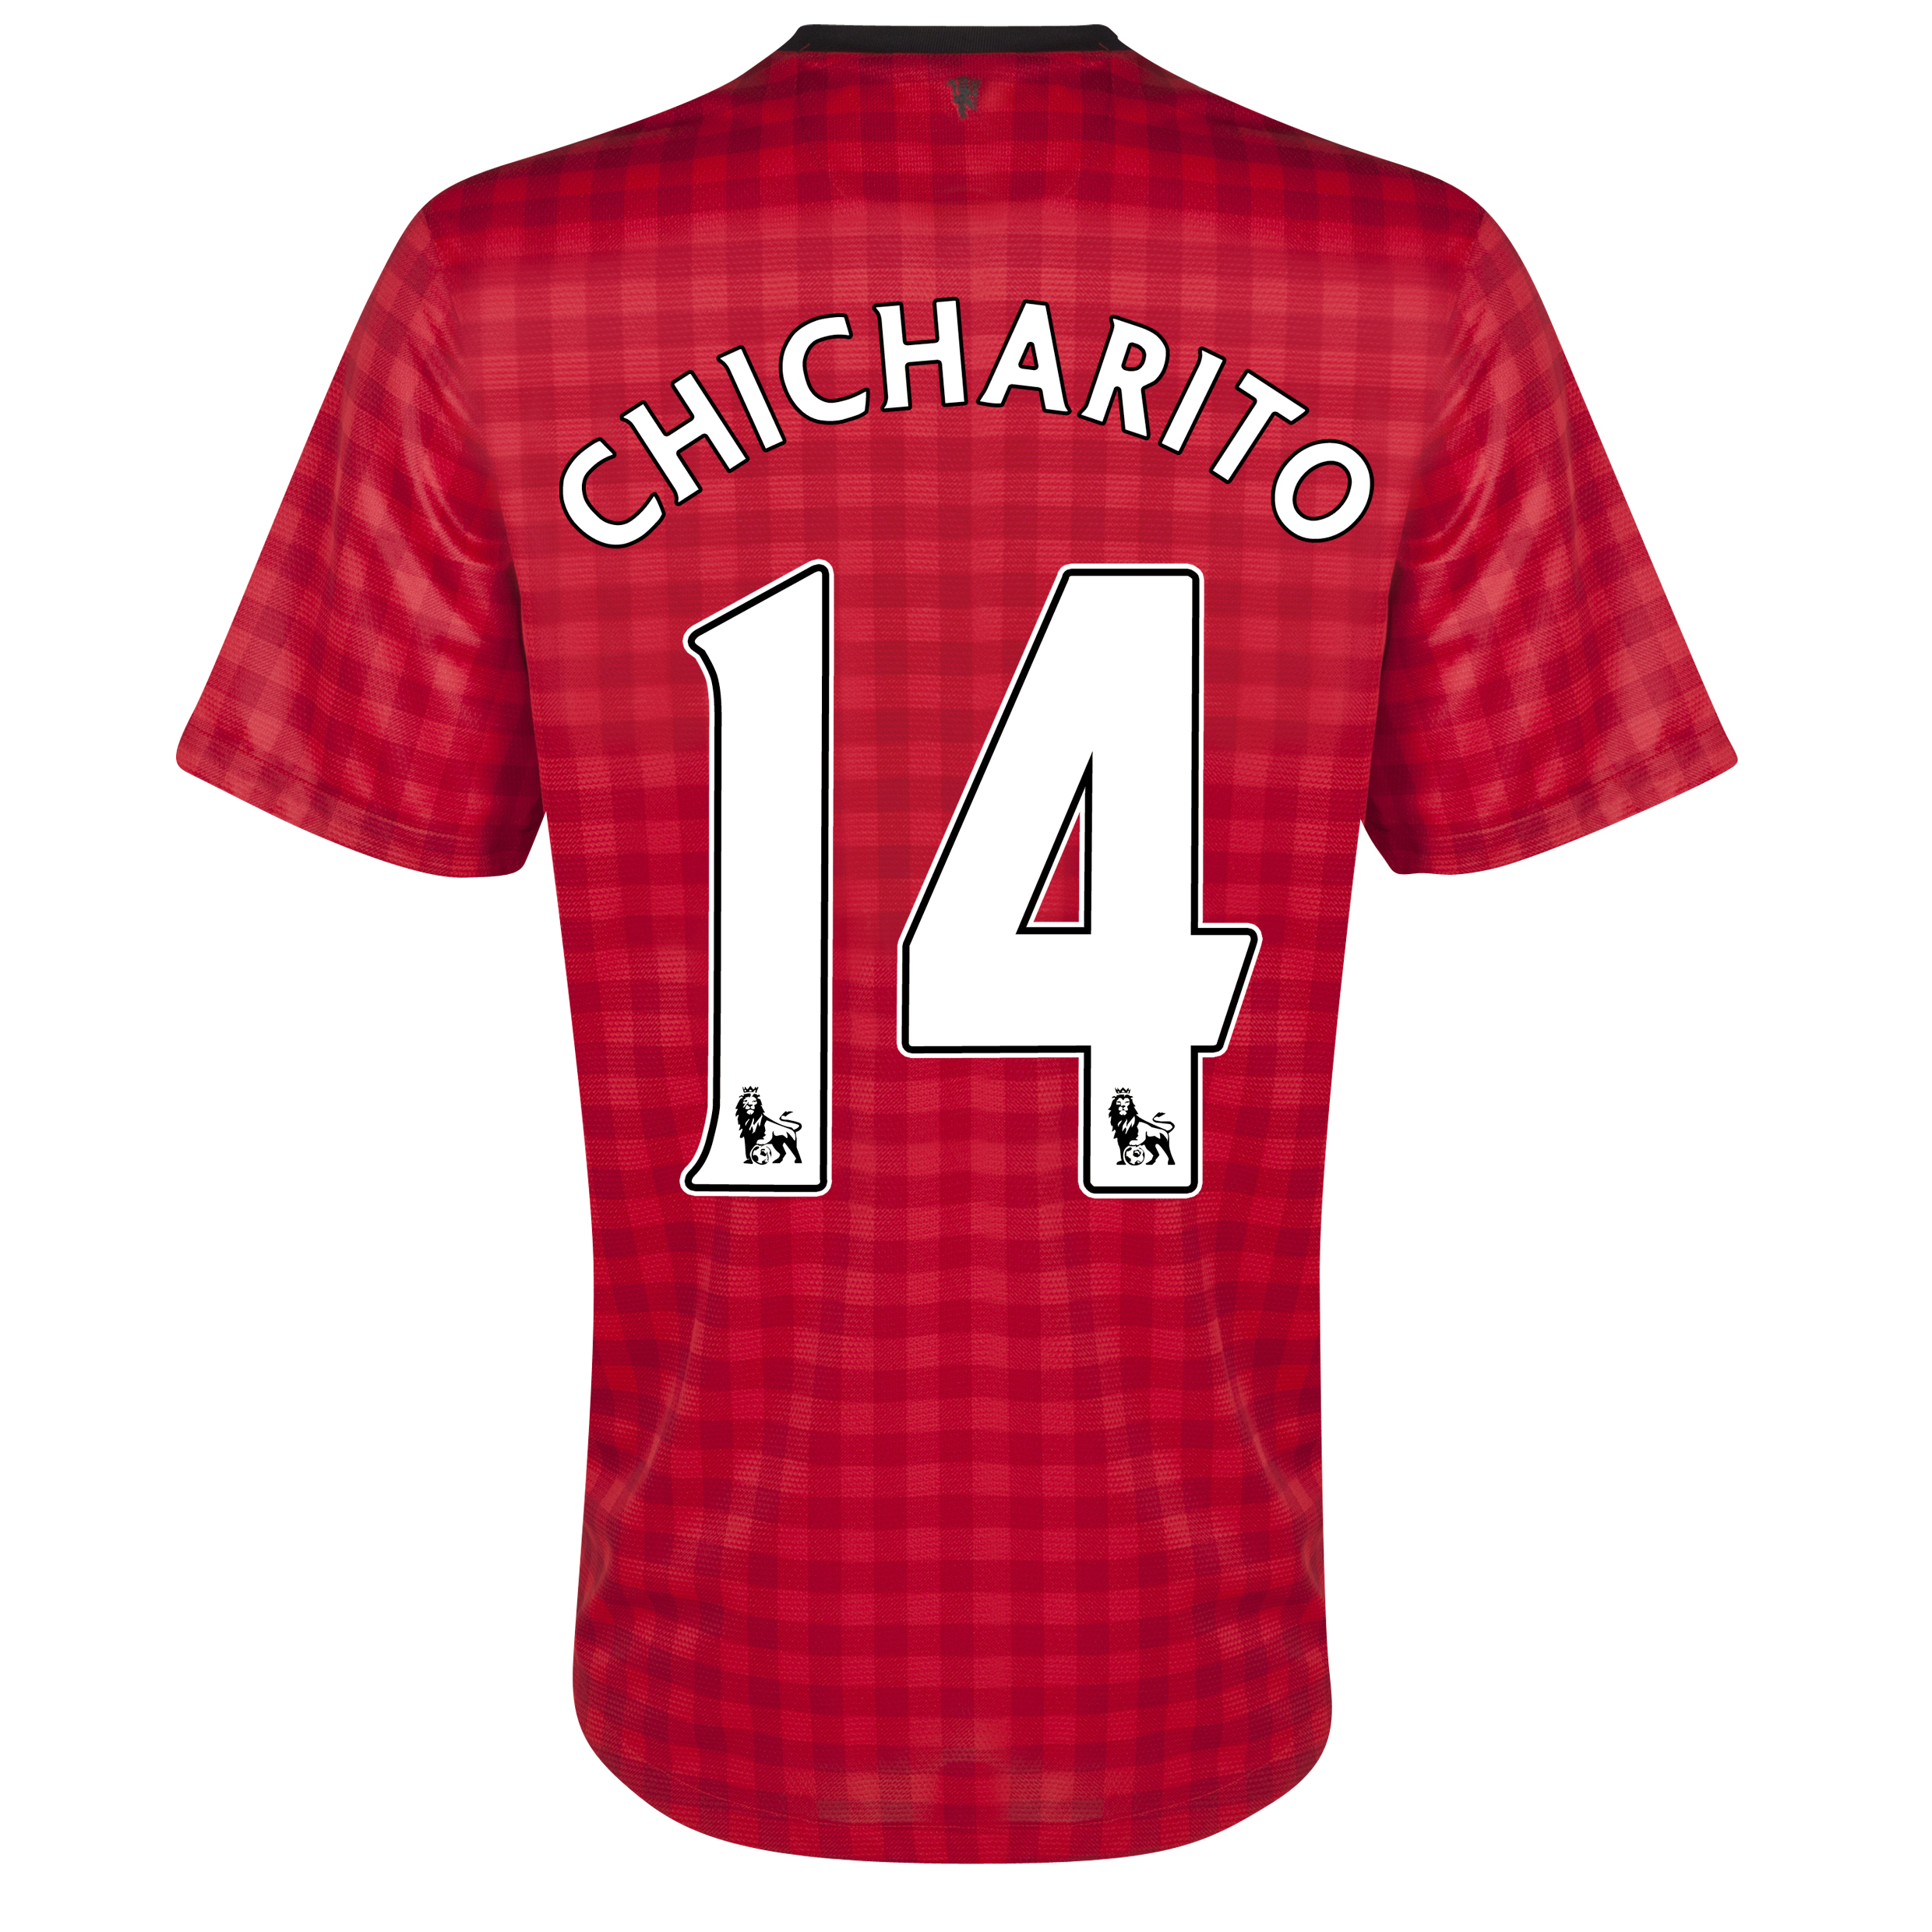 Manchester United Home Shirt 2012/13  - Youths with Chicharito 14 printing